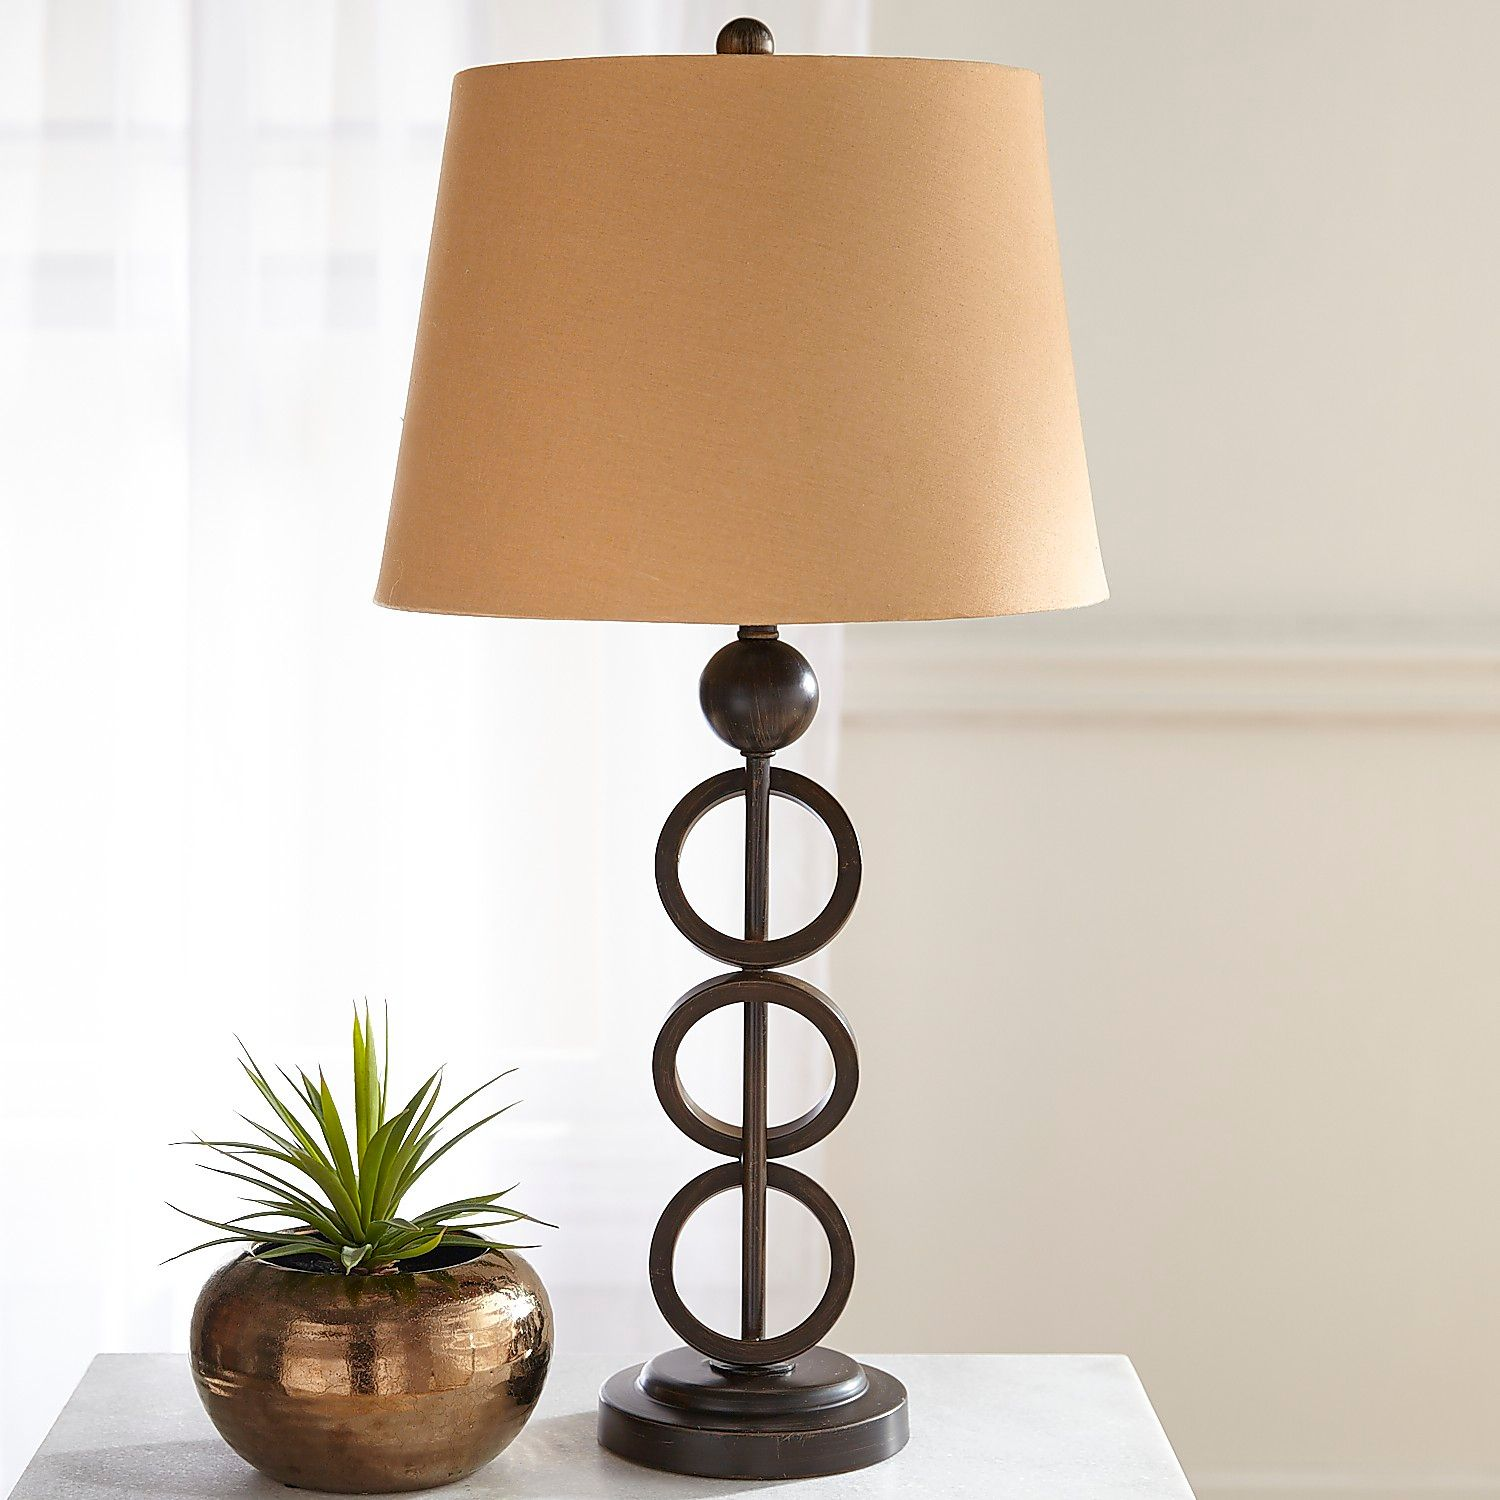 iron rings table lamp pier imports one accent lamps solid wood coffee and end tables ikea storage baskets cool retro furniture purple linens silver metal console pottery barn